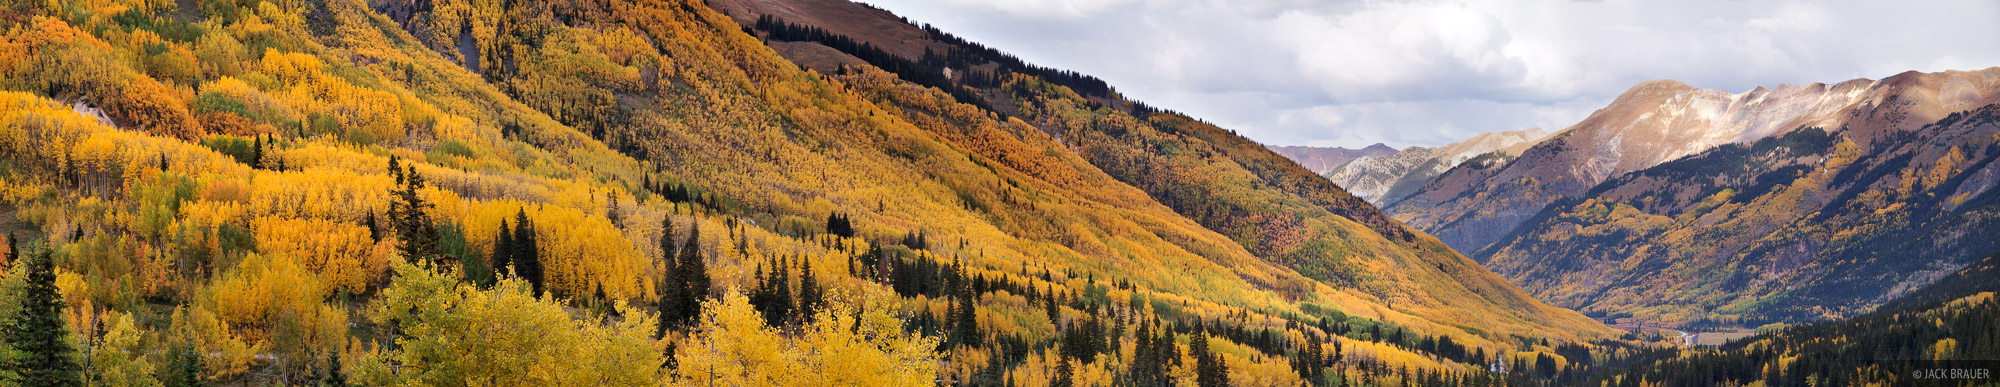 Aspens, Red Mountain Pass, Ironton, Colorado, photo